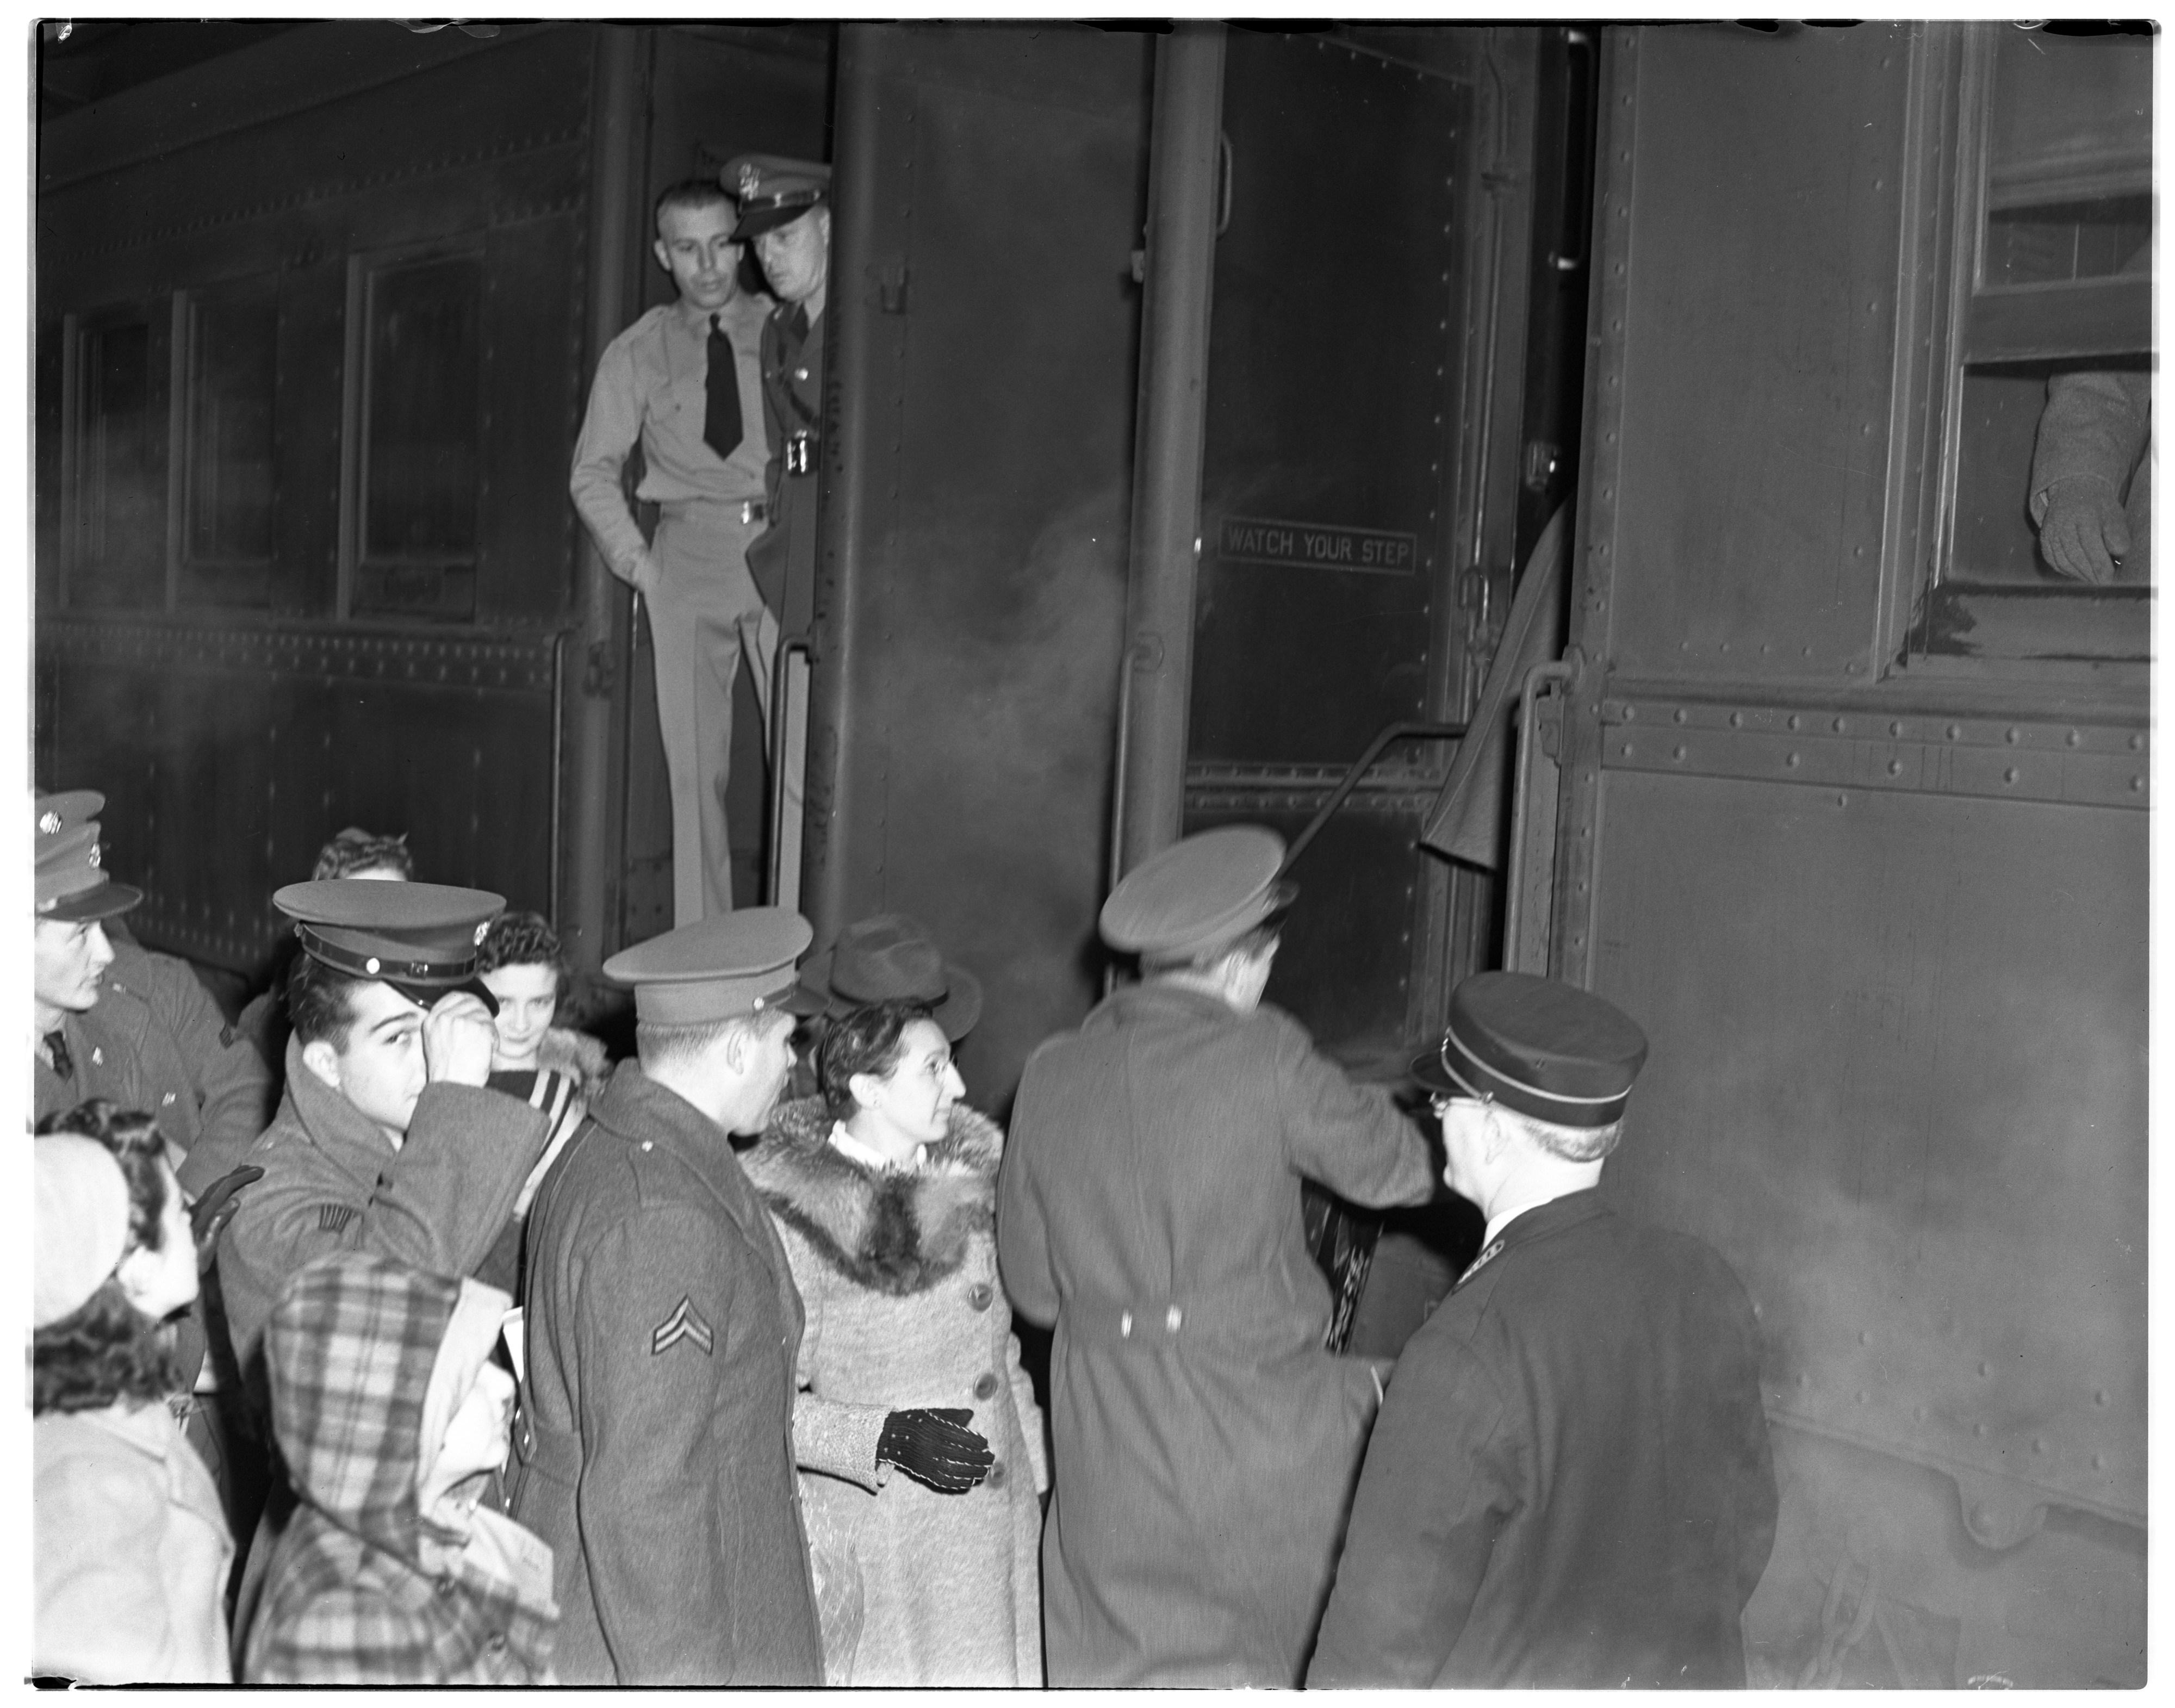 Soldiers Board Train Back for Camp After Christmas, January 1941 image